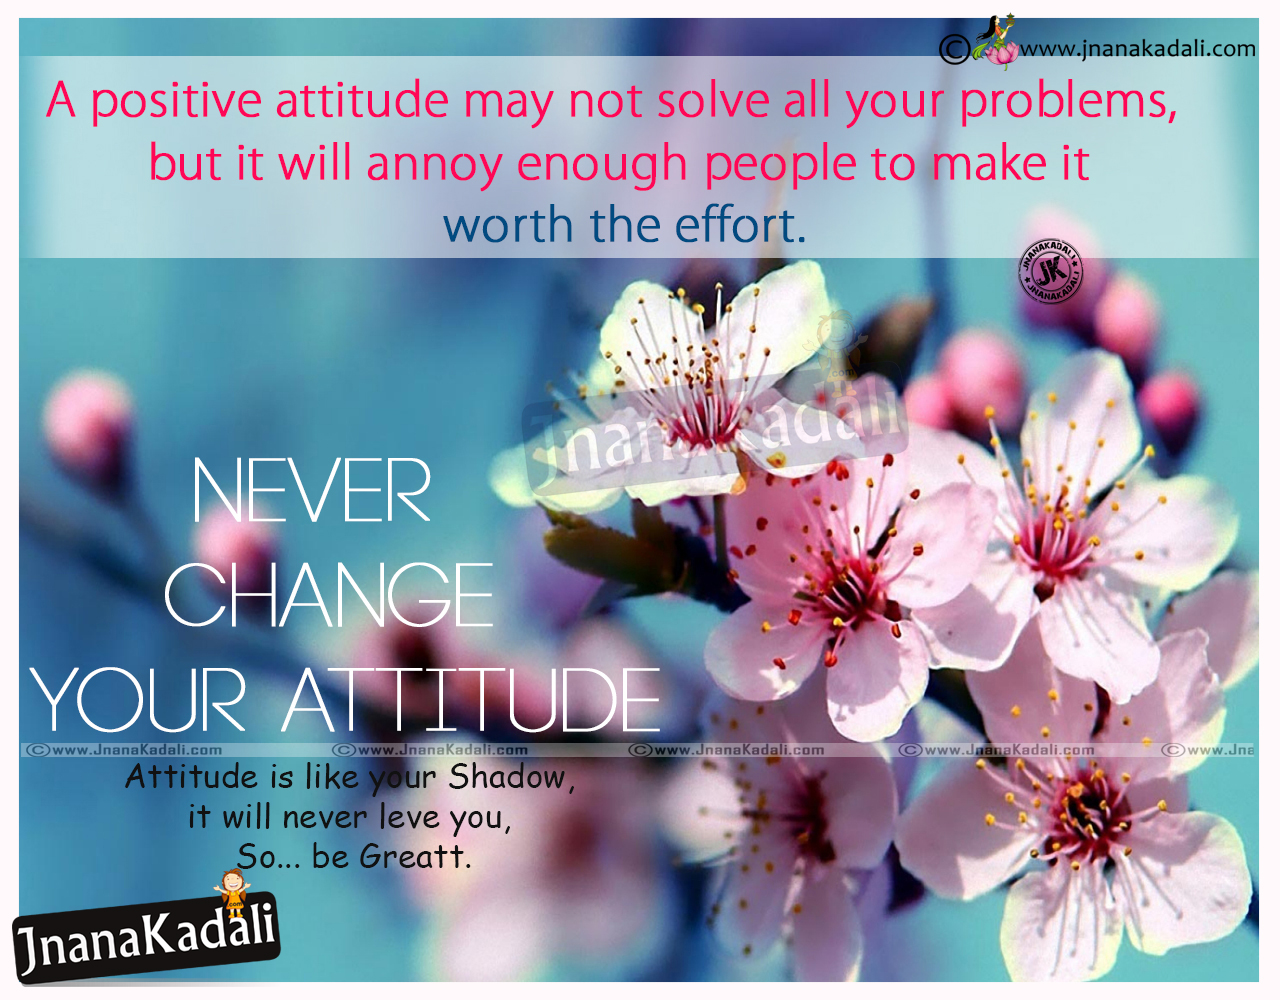 English Attitude Quotes And Messages Online Jnana Kadali